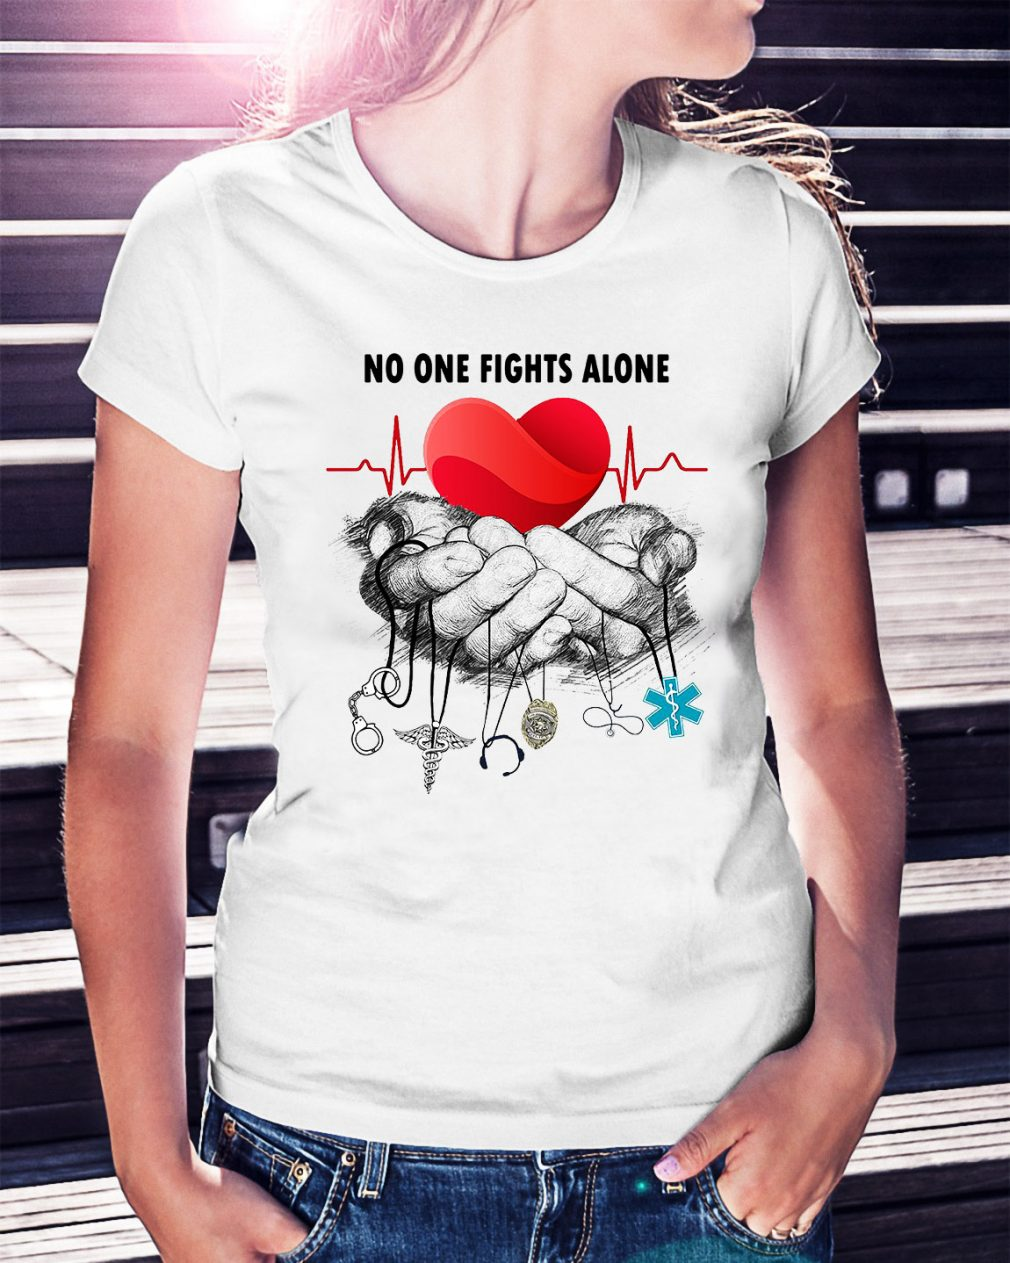 Nurse Police Firefighter Military Ems no one fights alone Ladies Tee